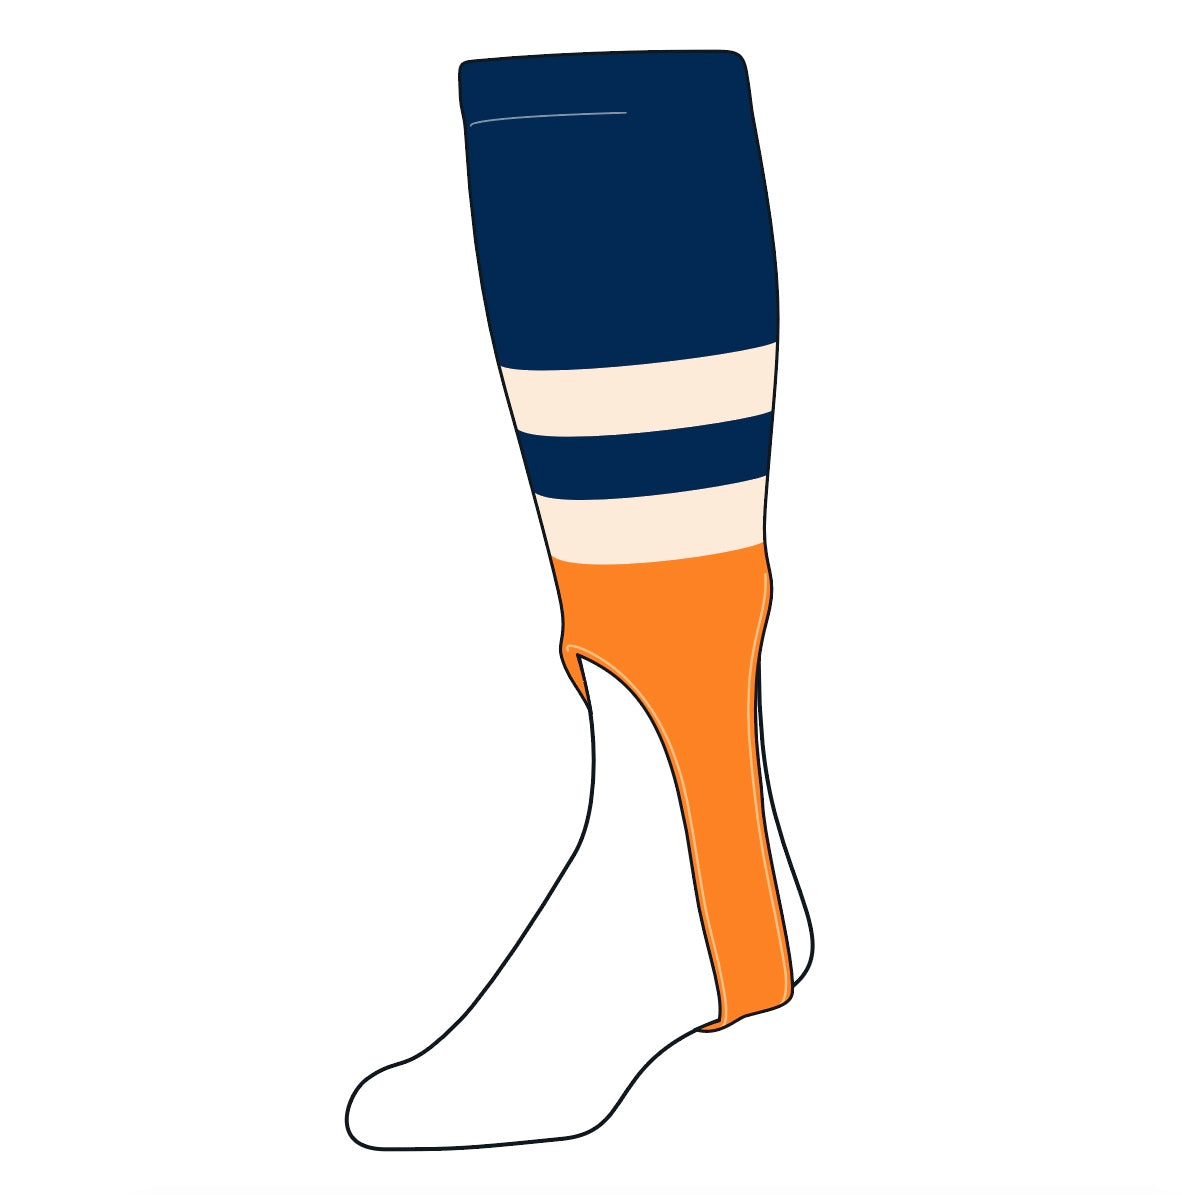 TCK Baseball Stirrups Medium (200G, 7in) Navy, Natural, Tennessee Orange